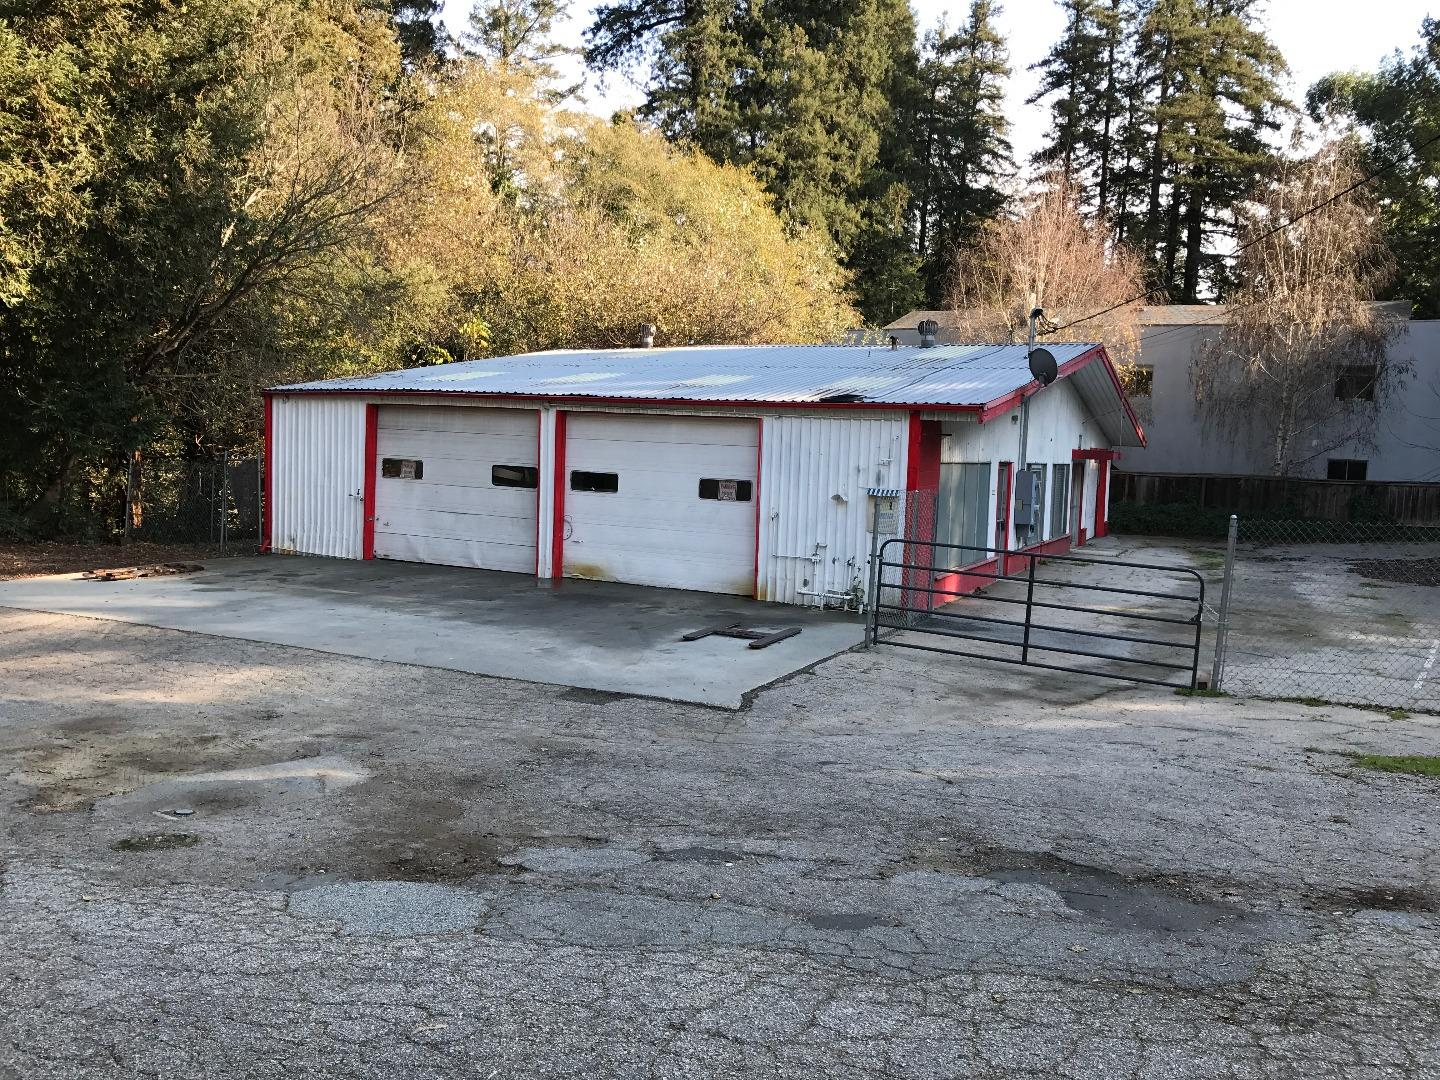 Commercial for Sale at 6660 Highway 9 6660 Highway 9 Felton, California 95018 United States